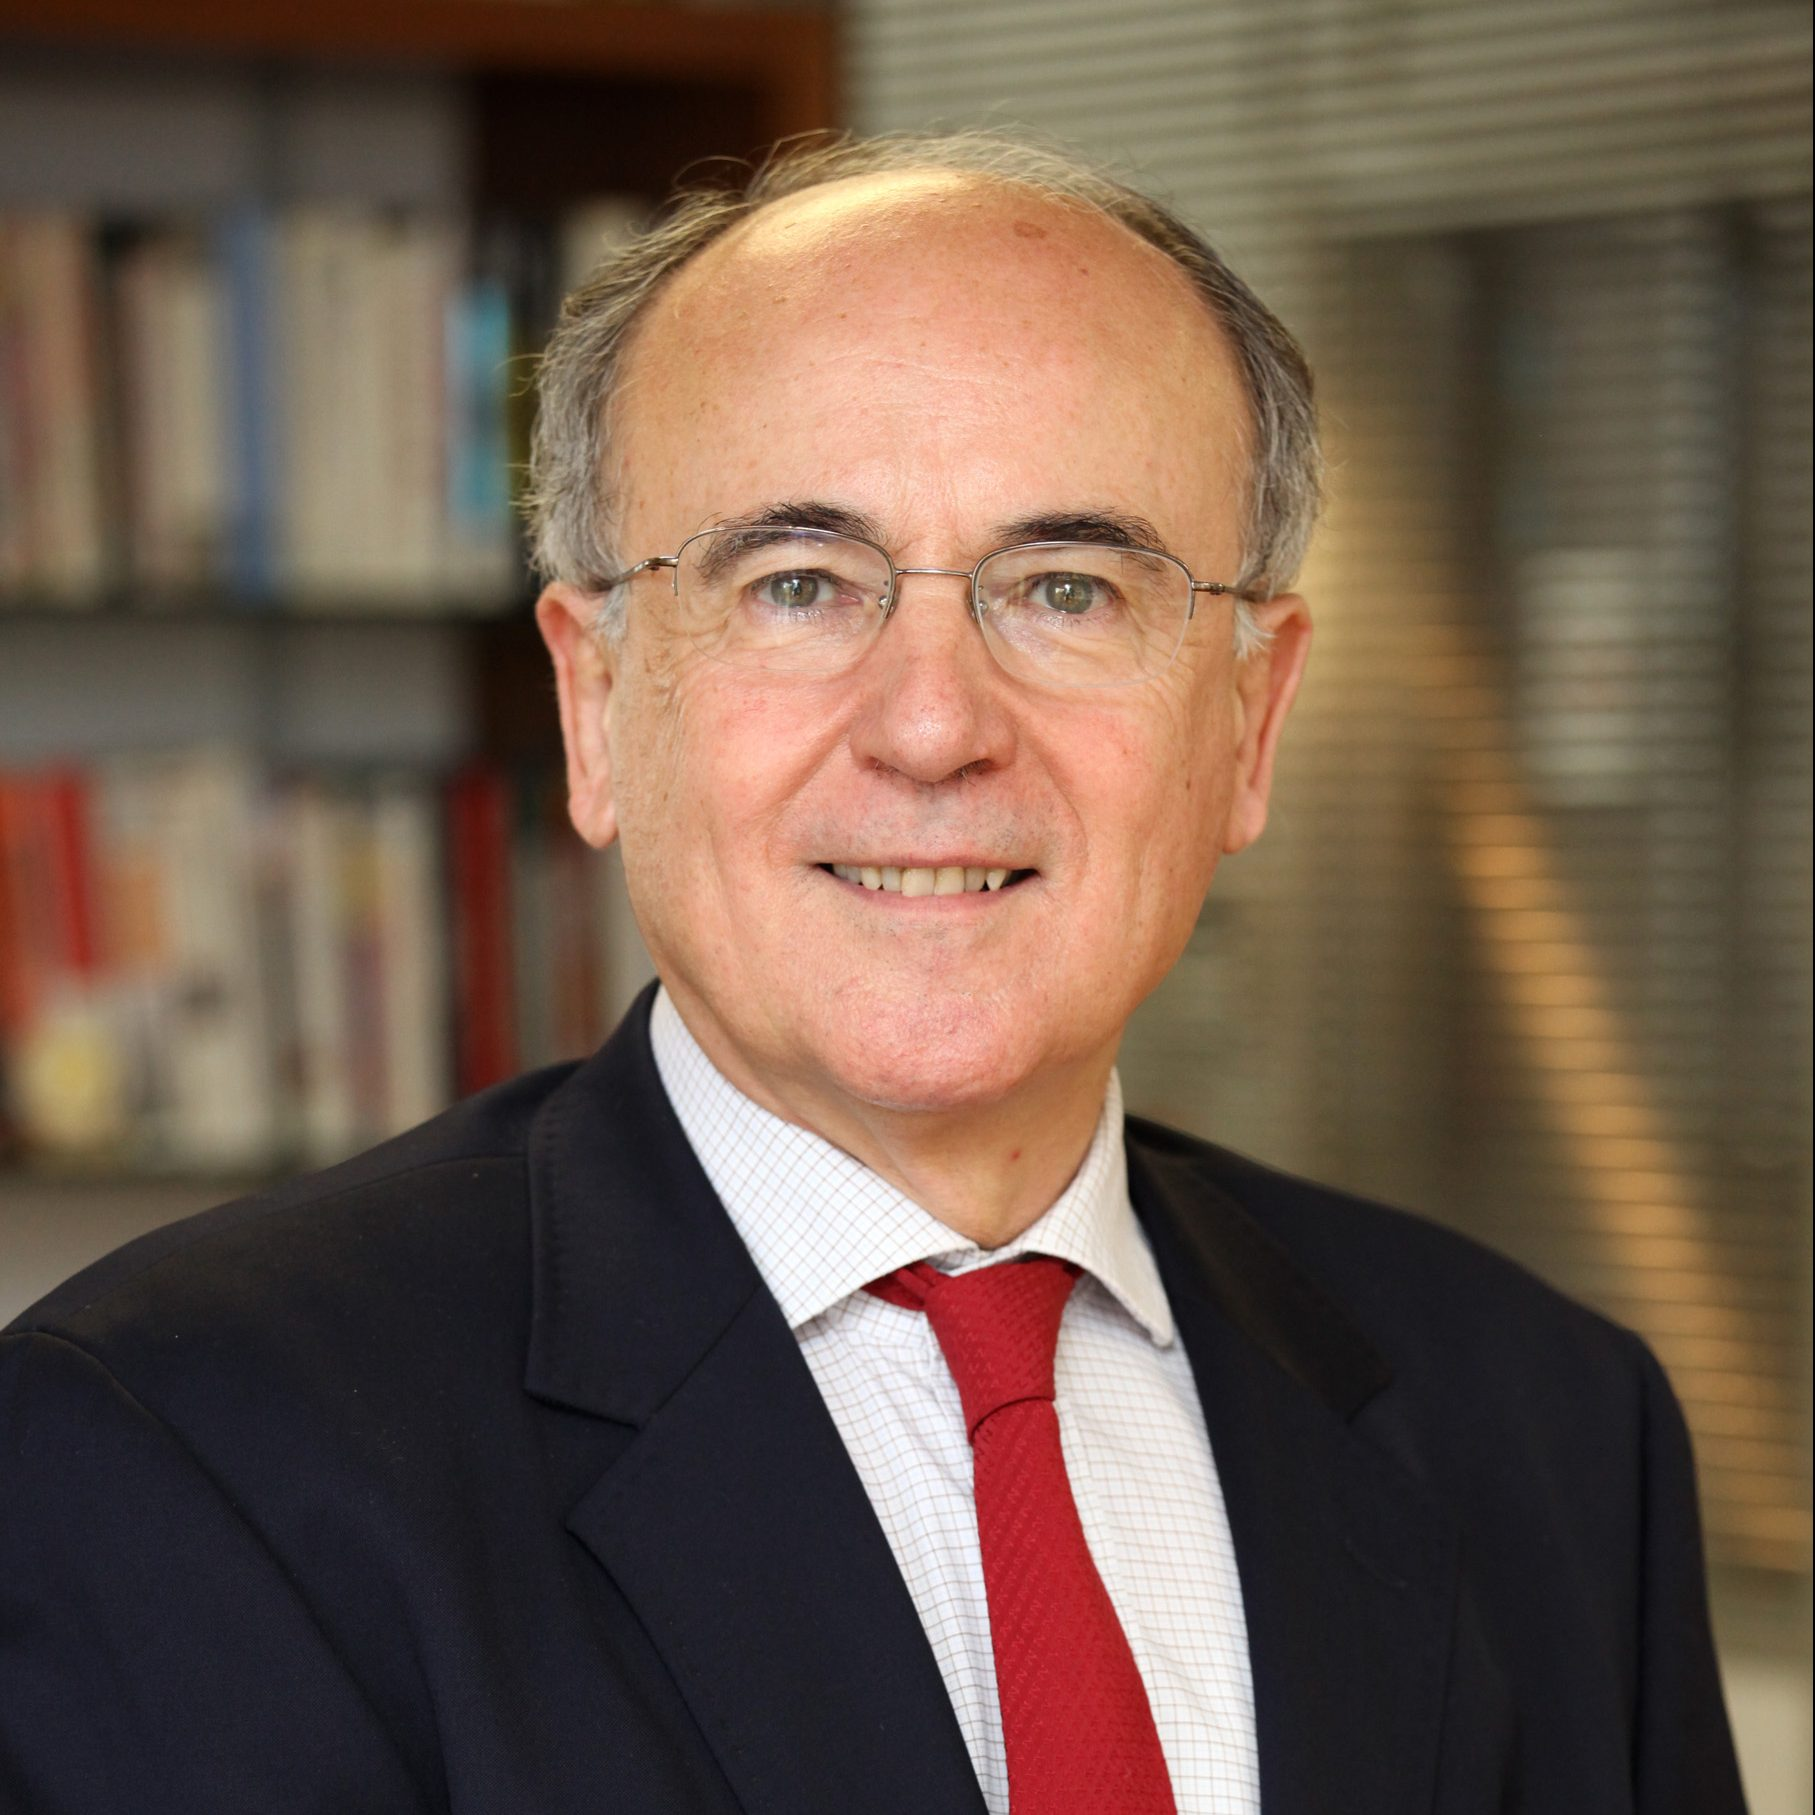 Michel Raud - Research ContributorFOURPOINTS Investment Managers (Paris)